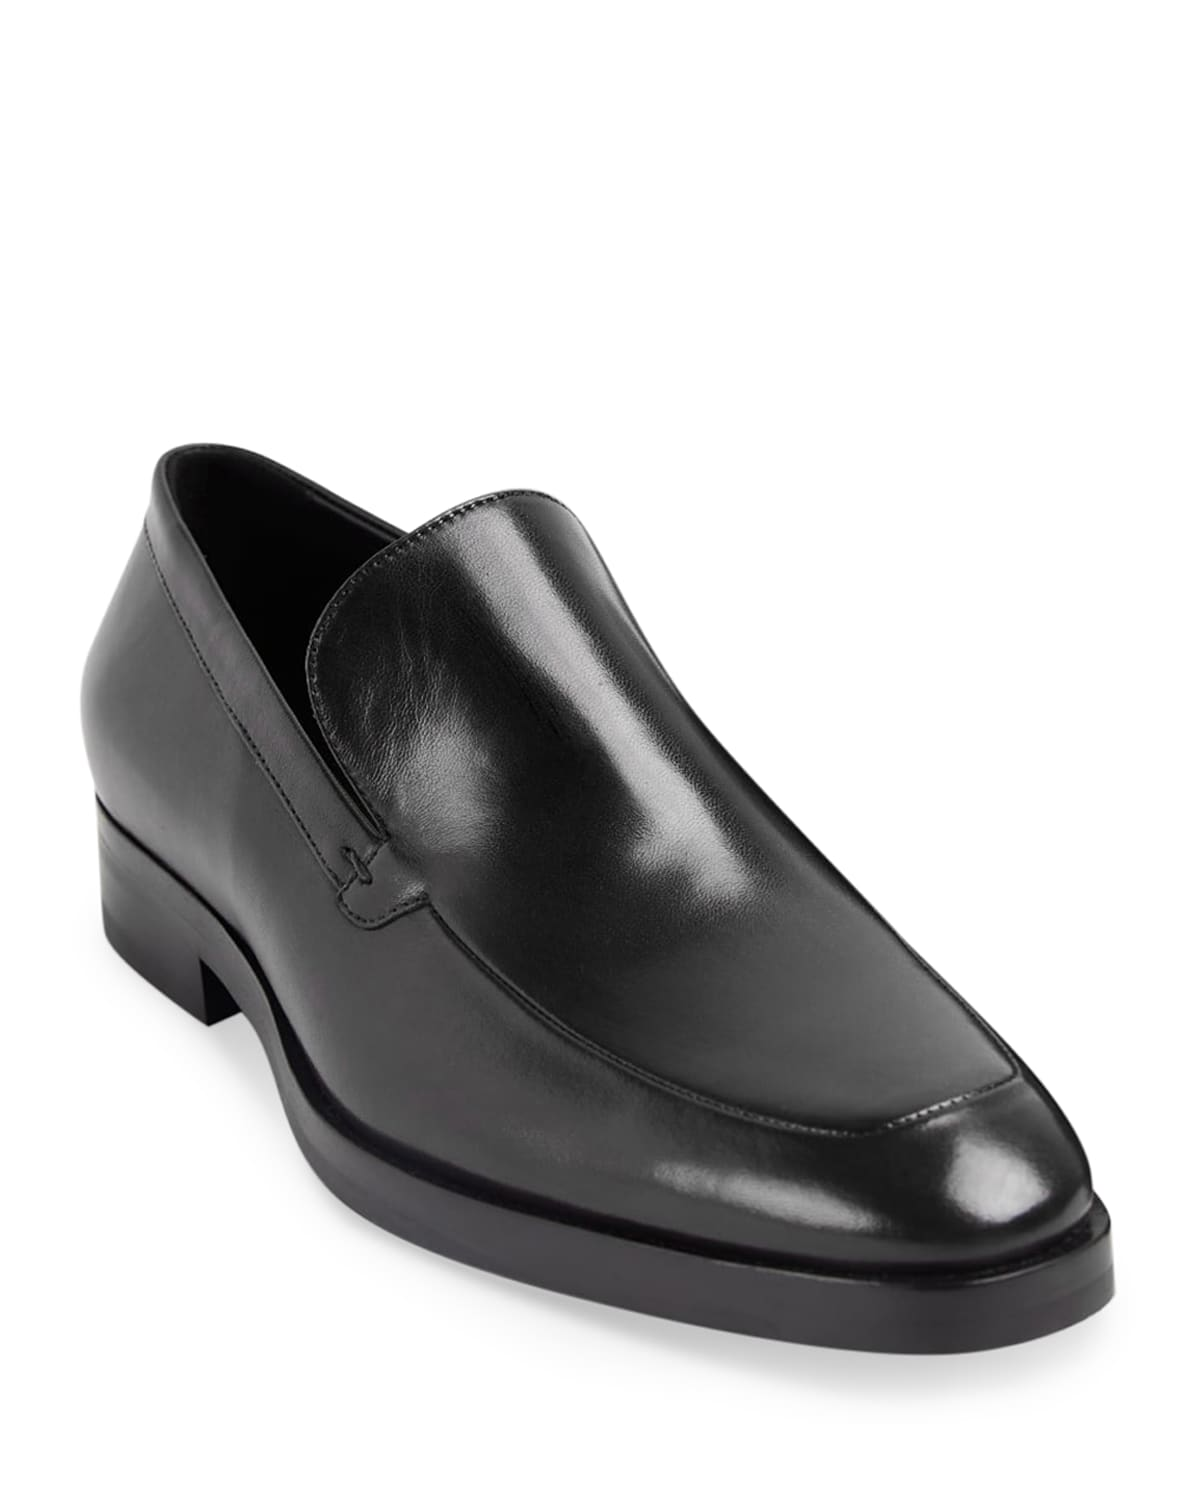 Men's Nantes Shiny Leather Loafers